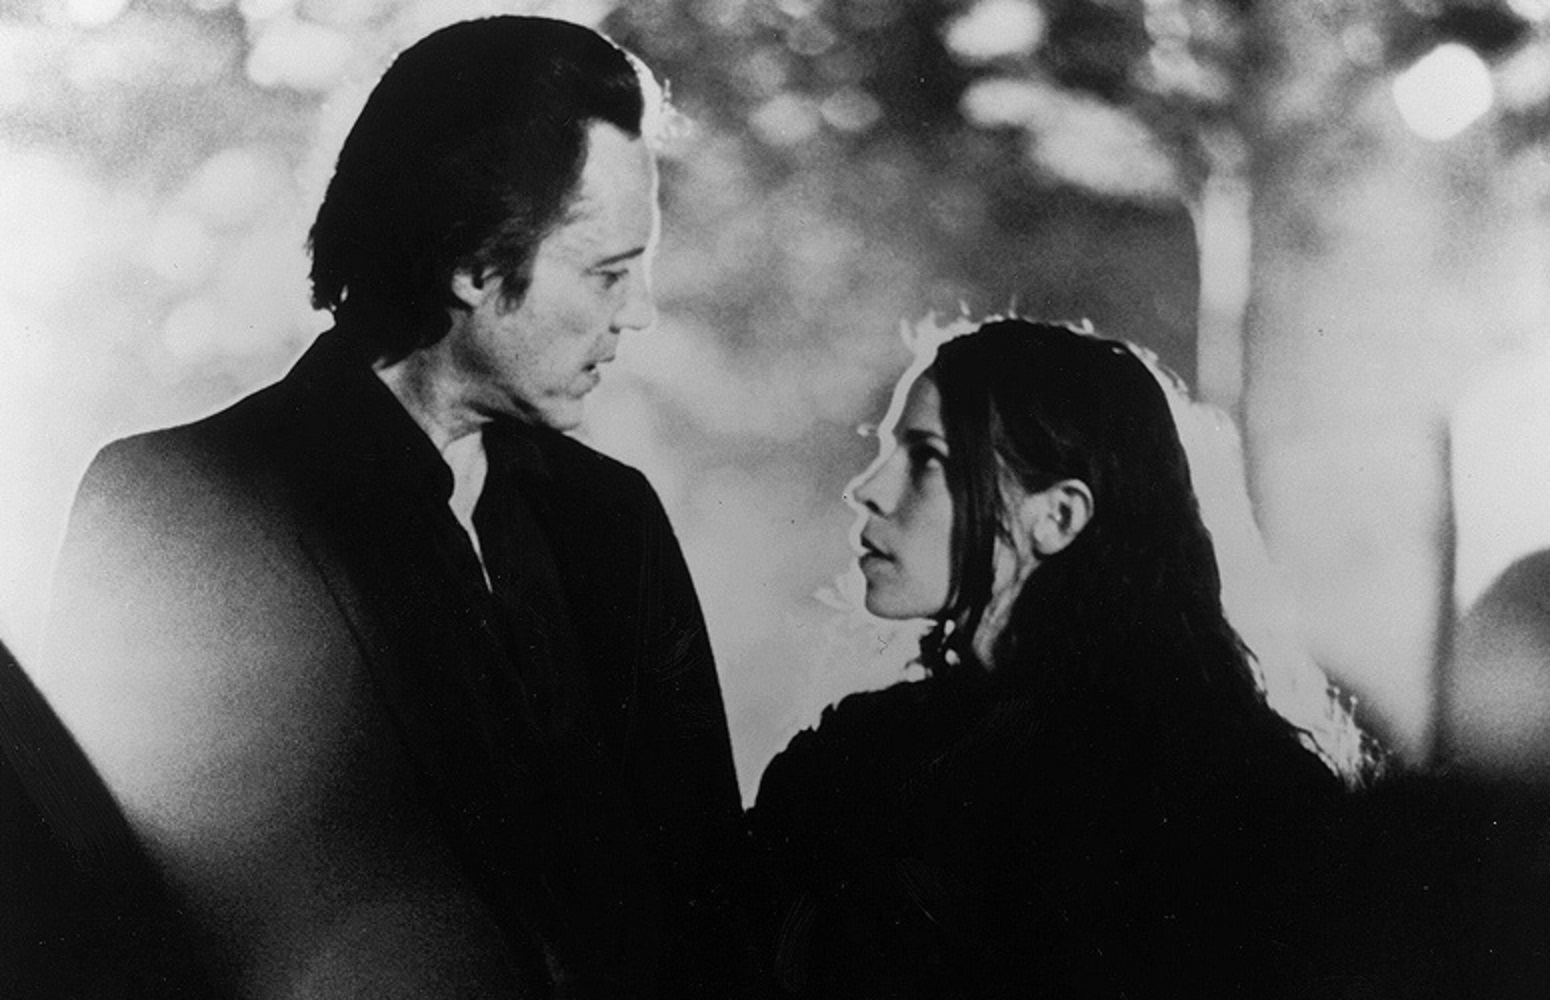 Christopher Walken, Lili Taylor in The Addiction (1995)